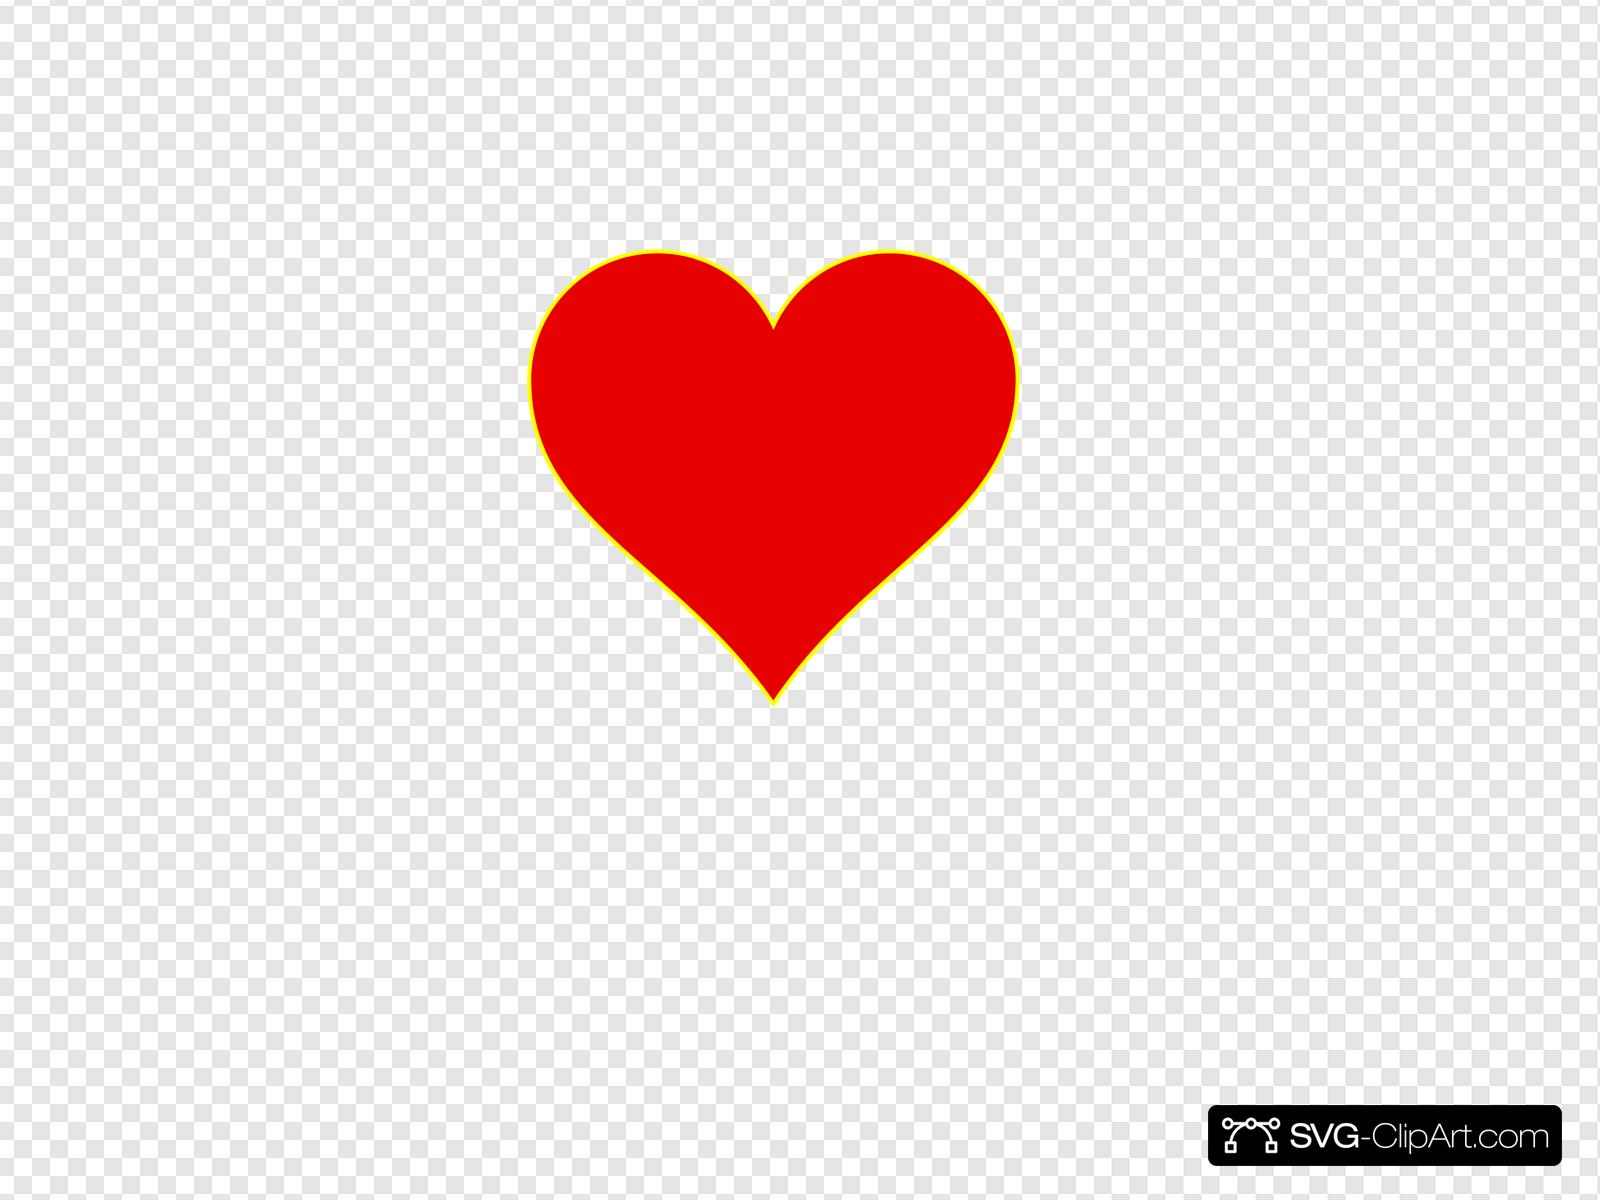 Bright heart clipart clipart free download Bright Heart Clip art, Icon and SVG - SVG Clipart clipart free download